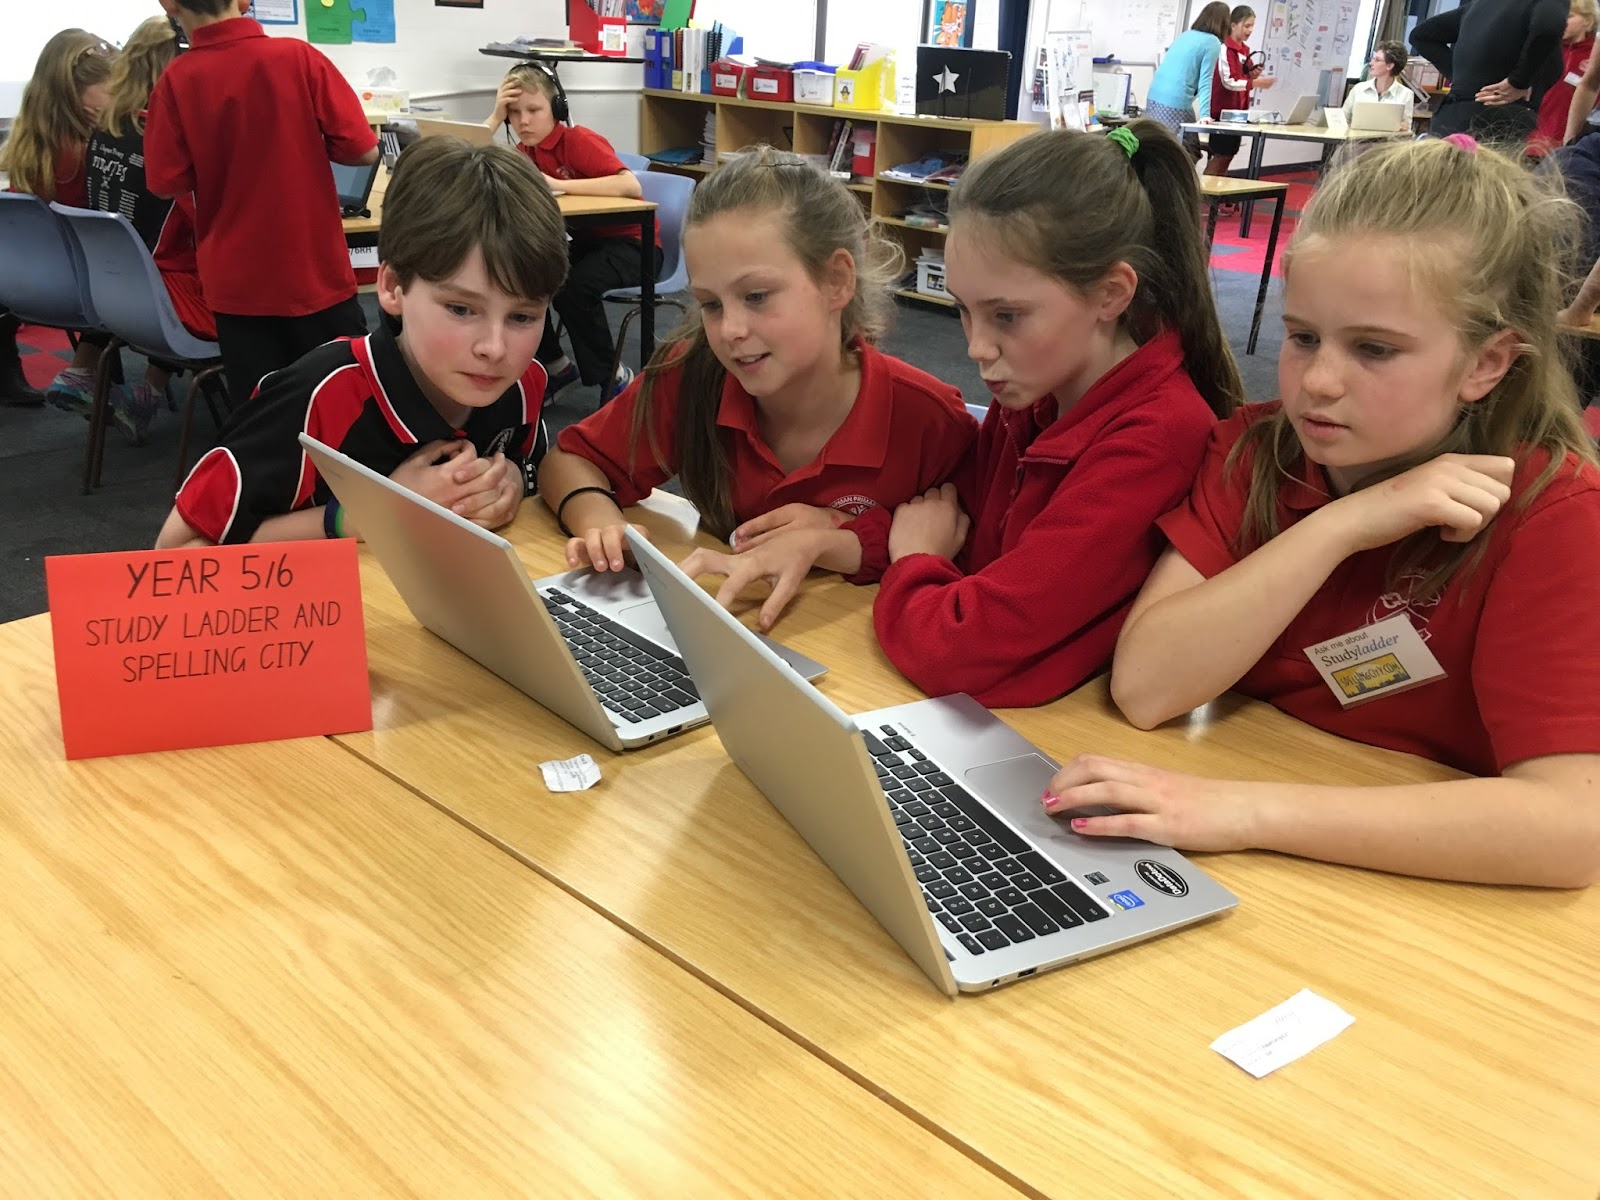 What do ICT teachers use Microsoft Access for while at school?